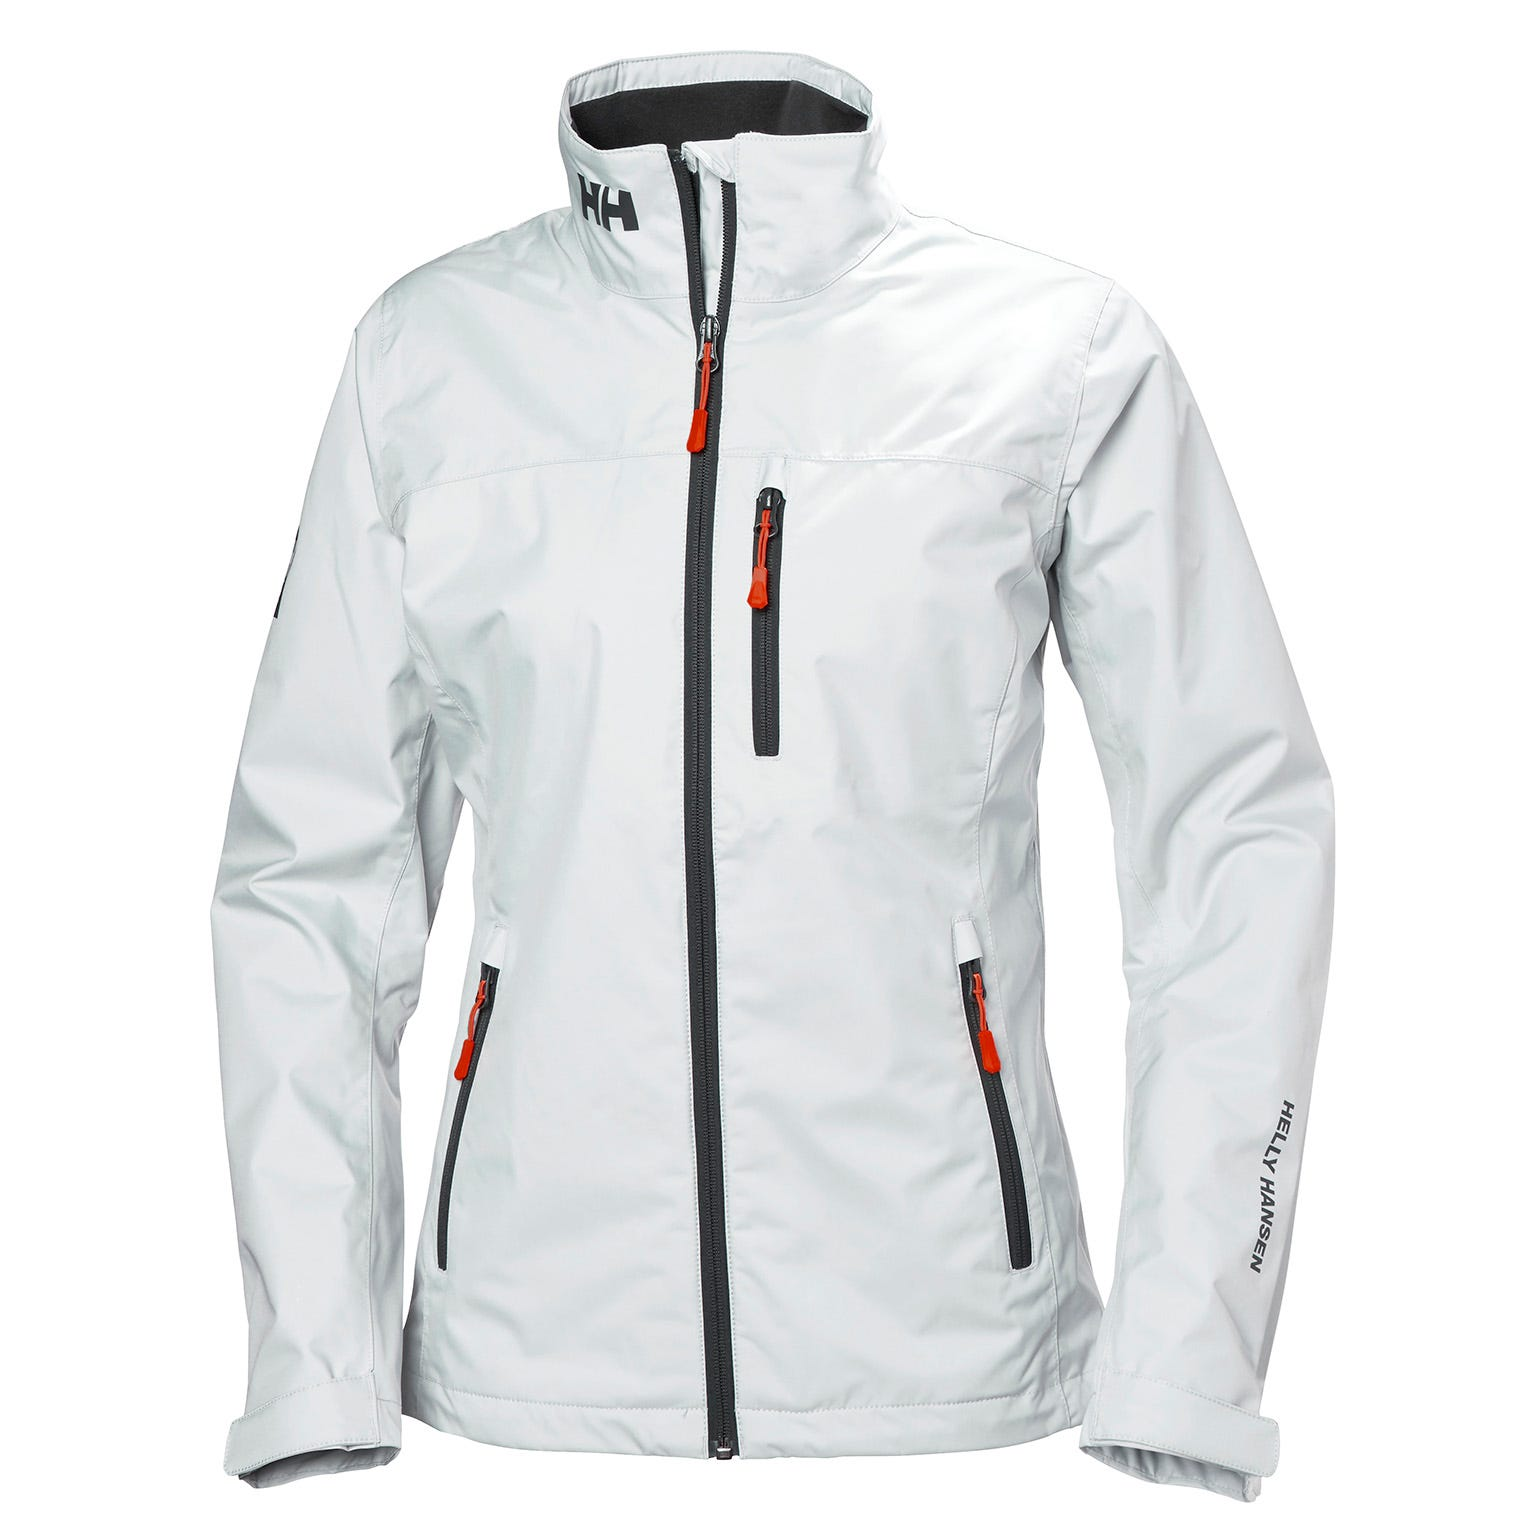 Helly Hansen Womens Crew Sailing Jacket White XS